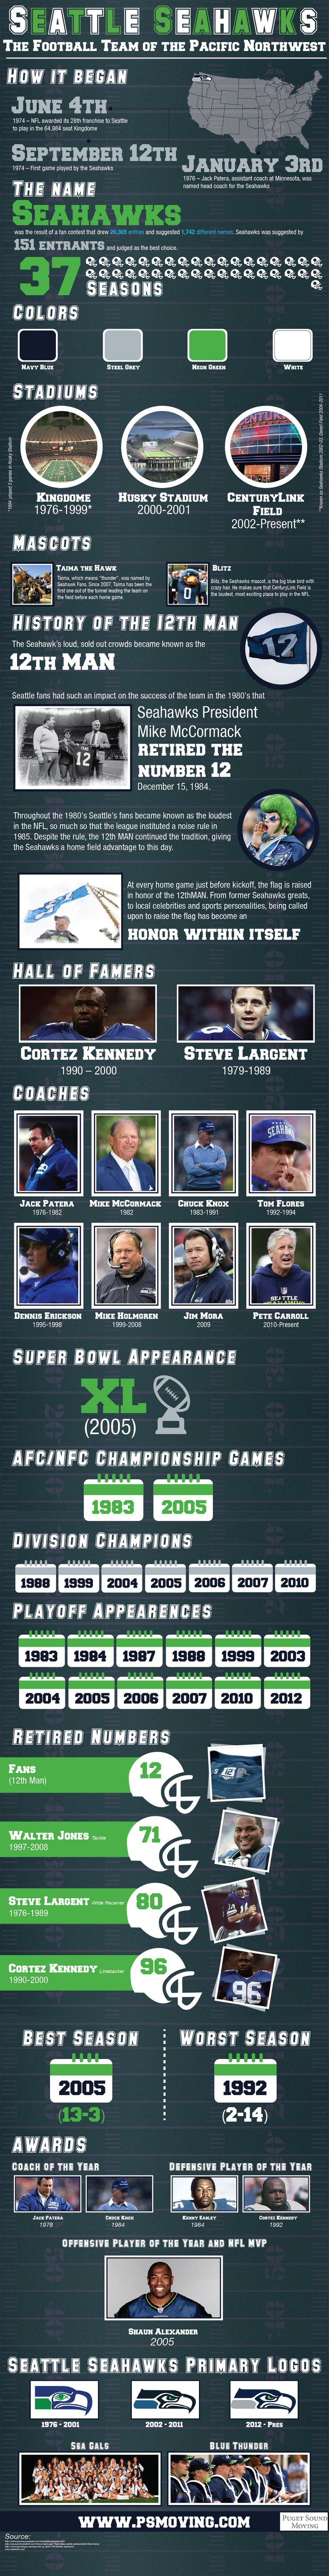 History of the Hawks - @Erin B B B Stockdill Seahawks #Infographic #FB